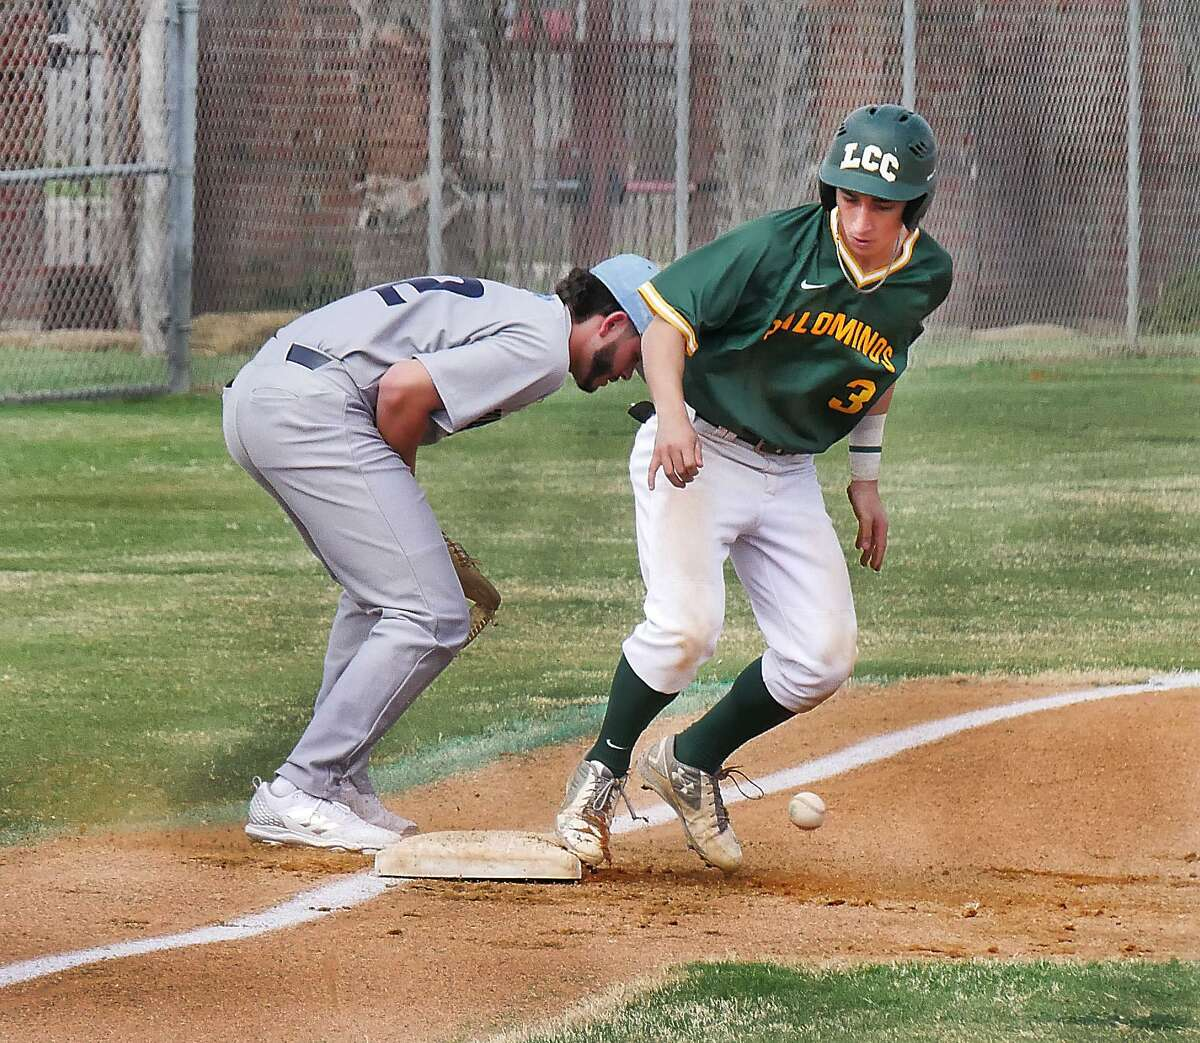 Ricky Villarreal was 3-for-7 with a walk and two runs Saturday as LCC fell 12-4 and 13-5 in a doubleheader at San Jacinto.